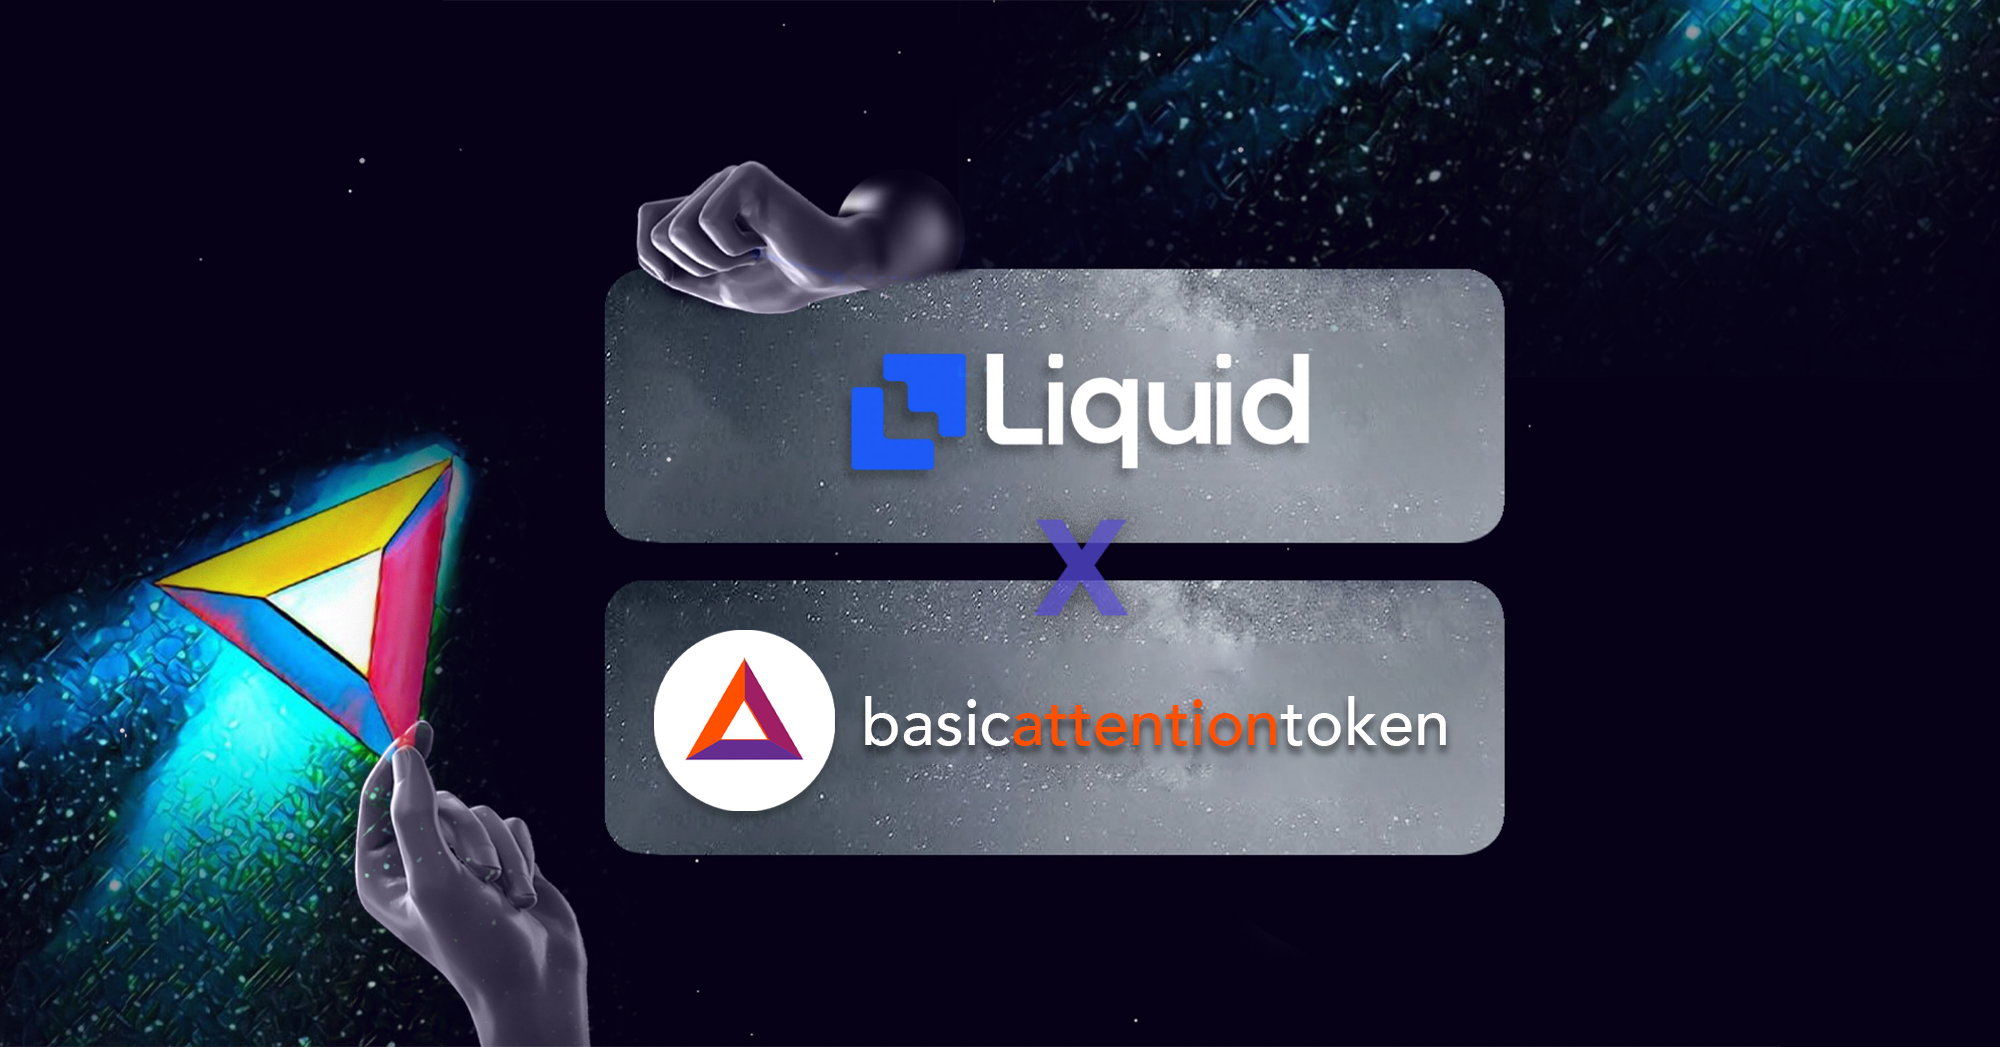 basic attention token trading on Liquid exchange